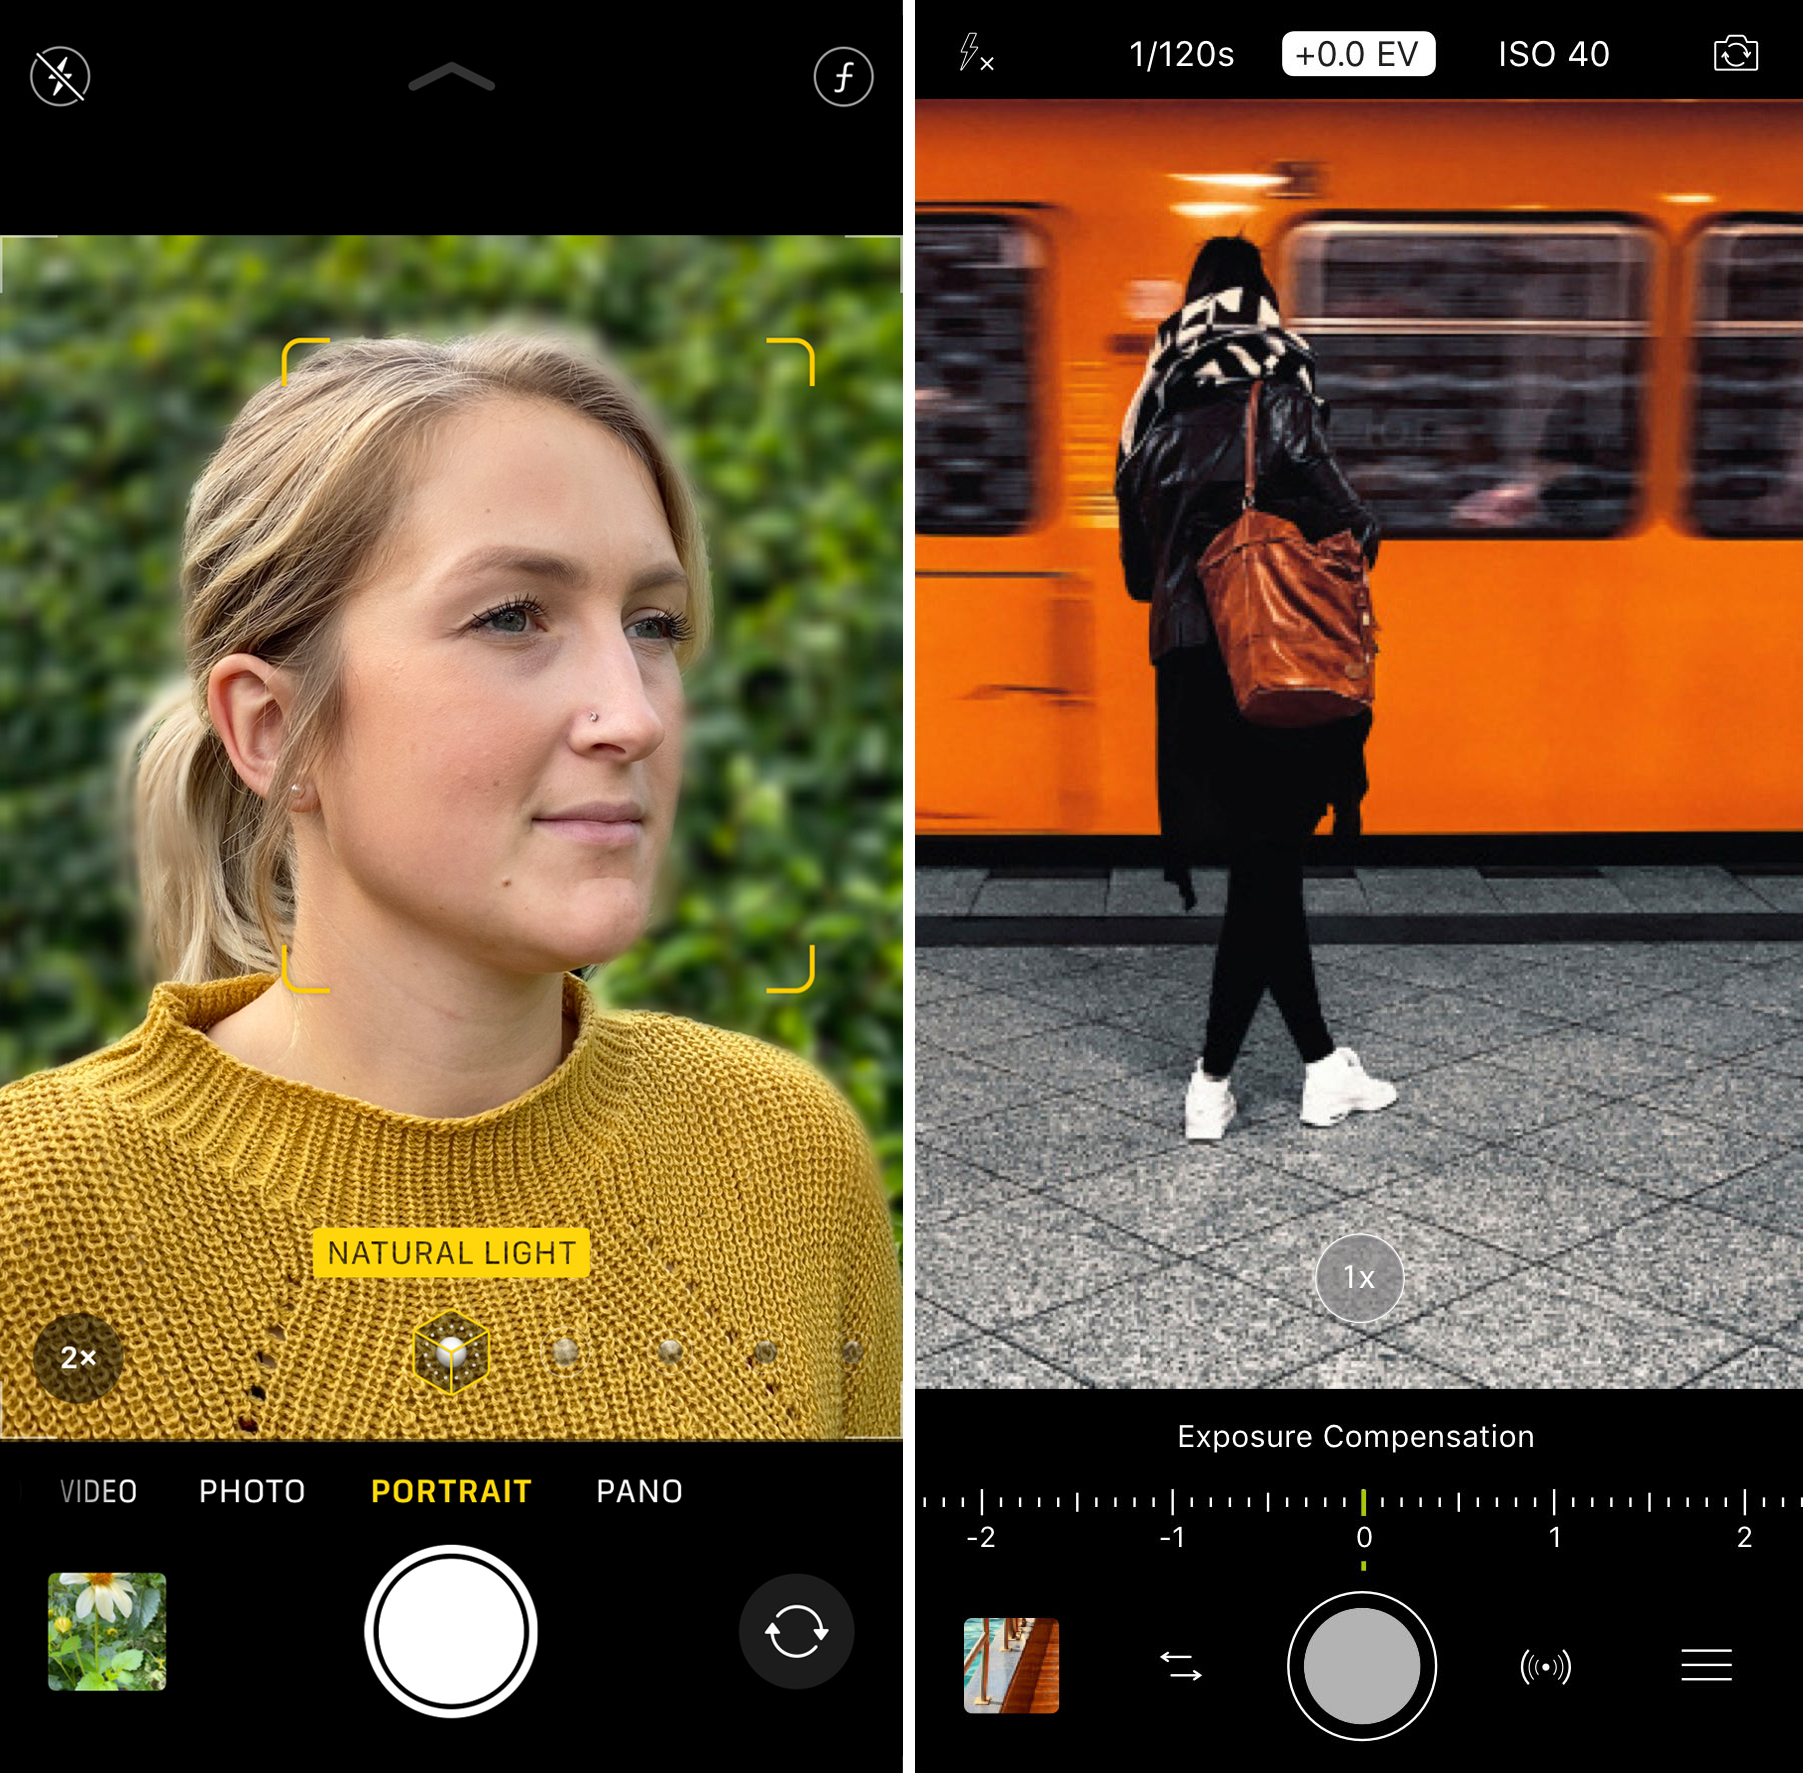 best free camera app for iphone xs max